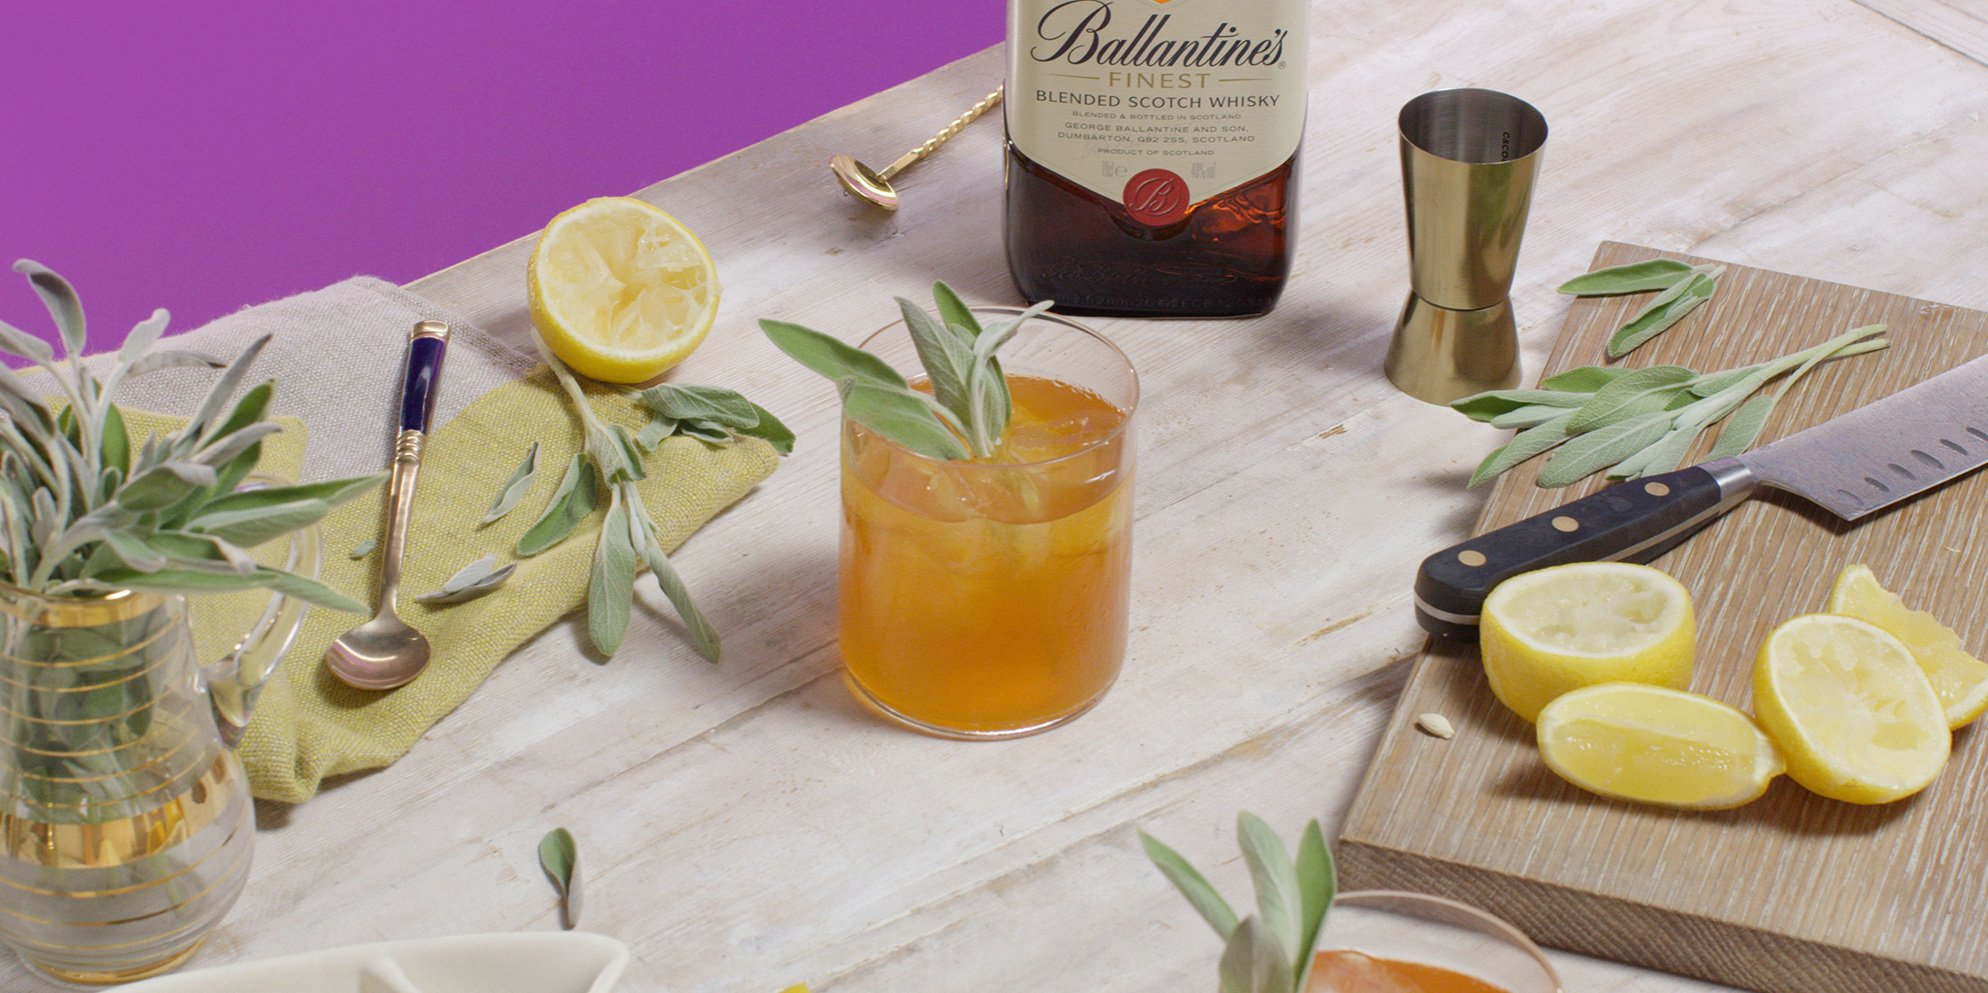 Ballantine's Gold Rush